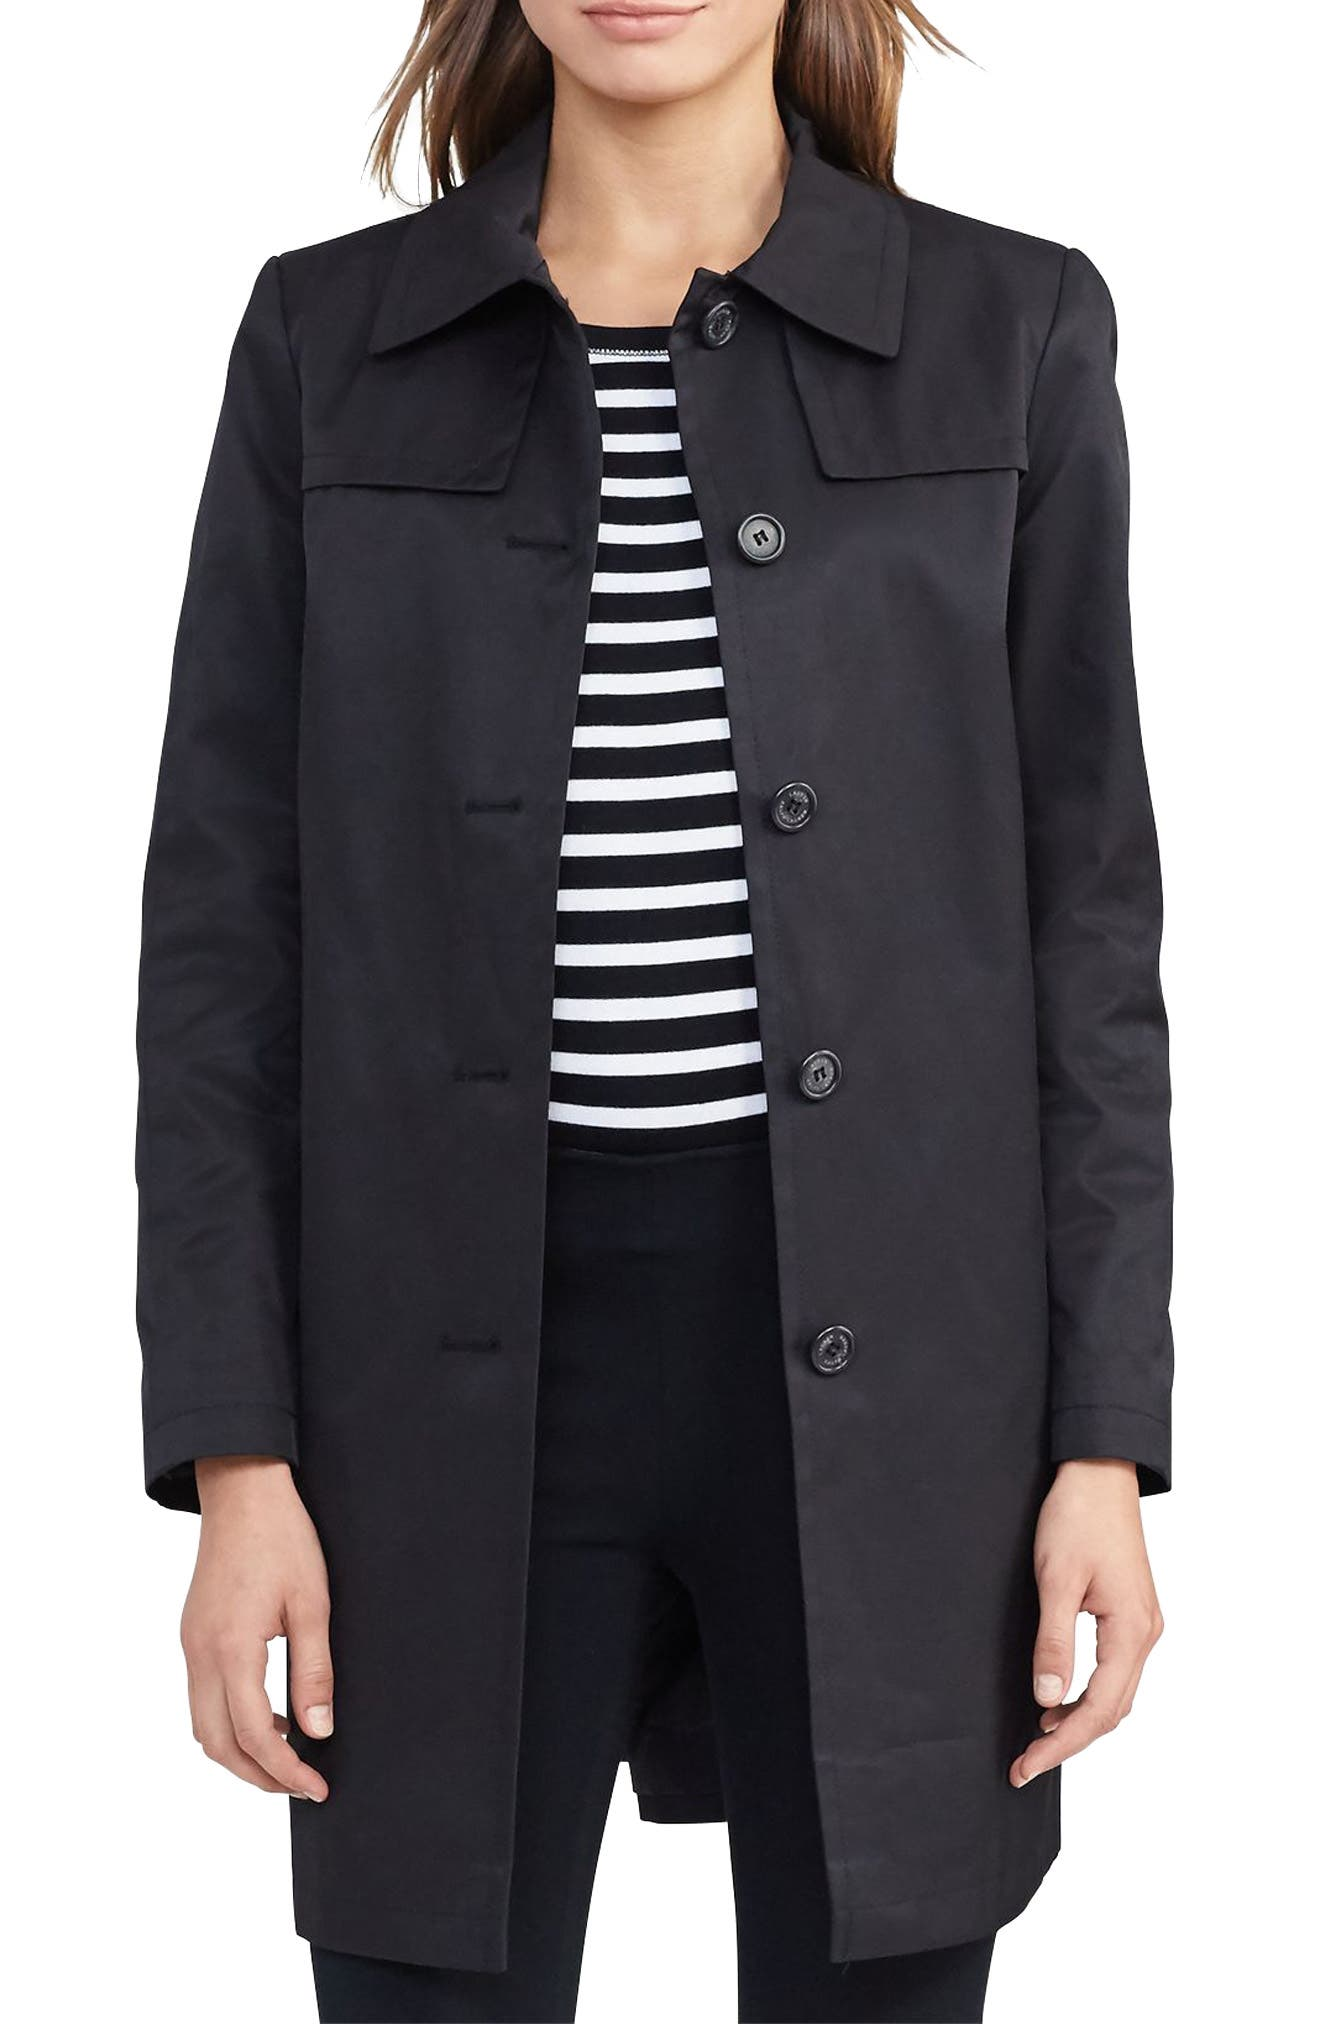 A-Line Trench Coat,                         Main,                         color, Black